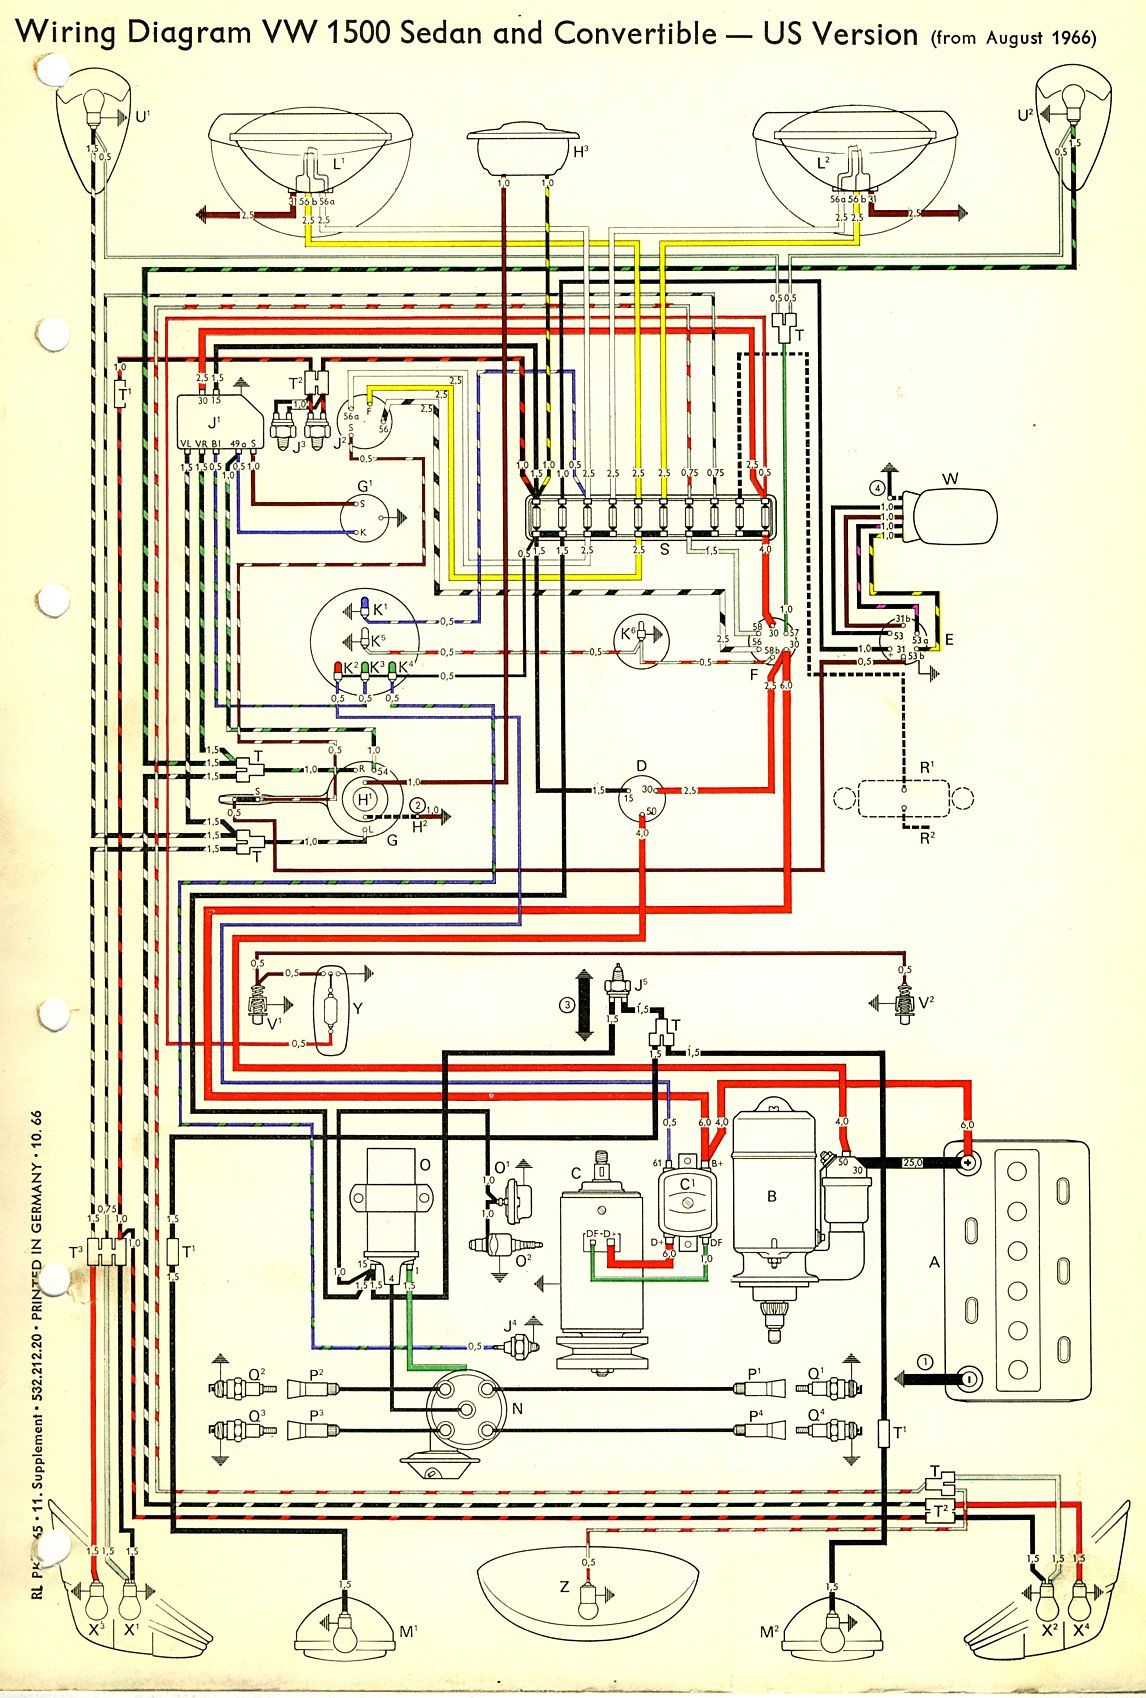 1adf990c0efb617c789fdd21338448b0 1967 beetle wiring diagram (usa) thegoldenbug com best 1967 vw 1971 vw bus wiring diagram at love-stories.co